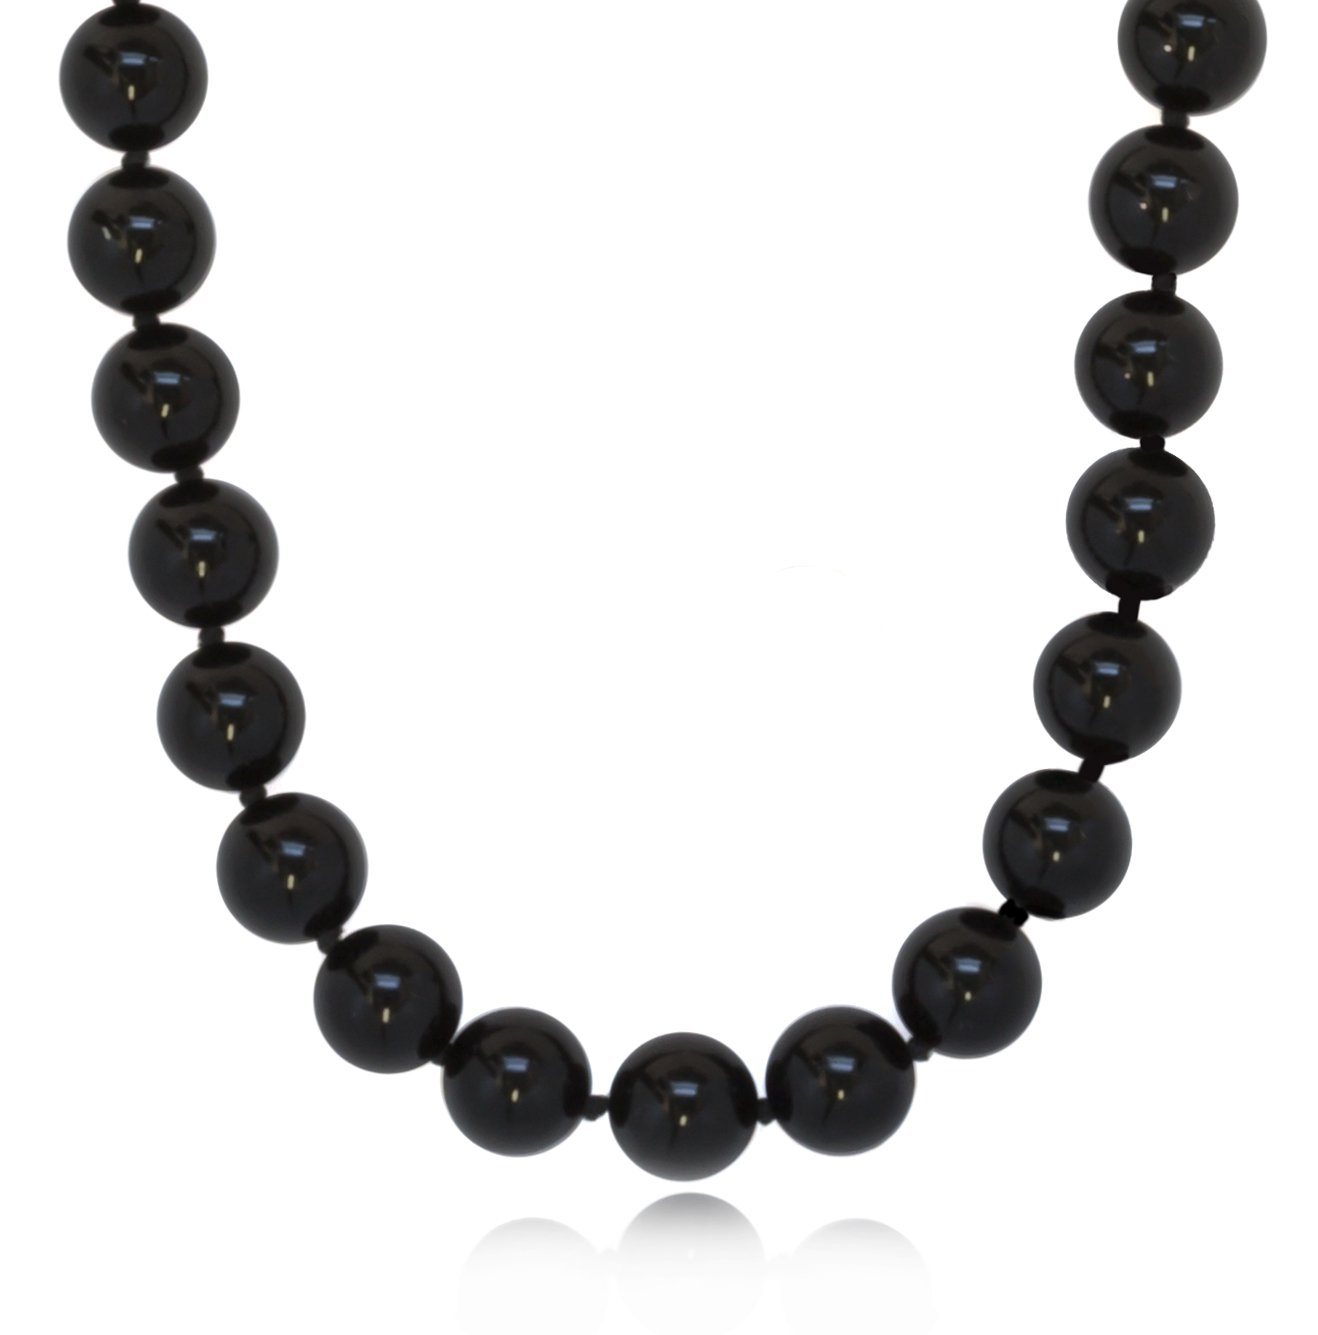 ISAAC WESTMAN 10mm Polished Black Onyx Beaded Necklace for Women | 925 Sterling Silver Clasp (20)